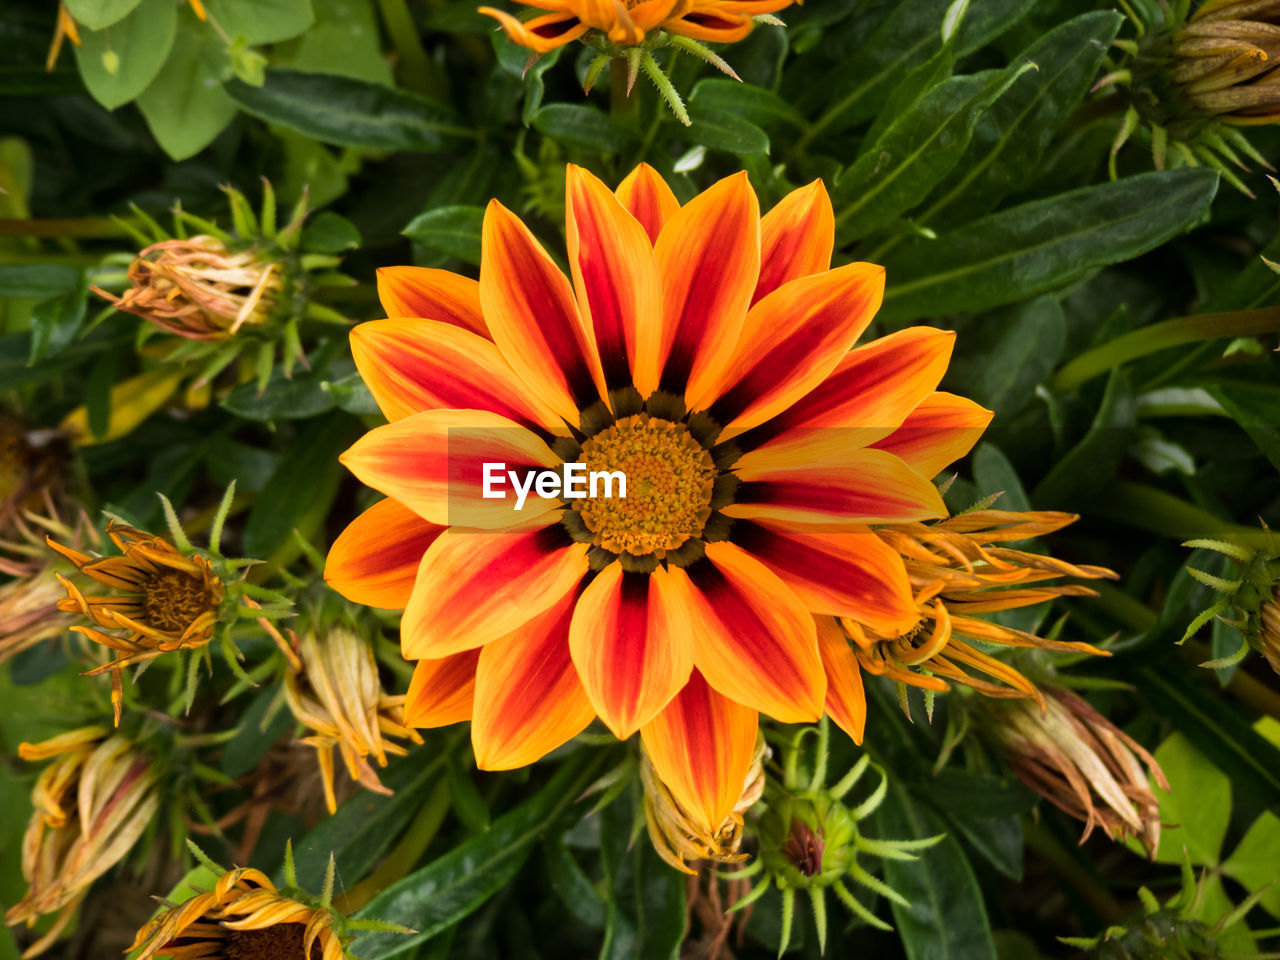 flower, beauty in nature, petal, flower head, nature, freshness, growth, fragility, plant, orange color, leaf, blooming, no people, green color, outdoors, gazania, day, close-up